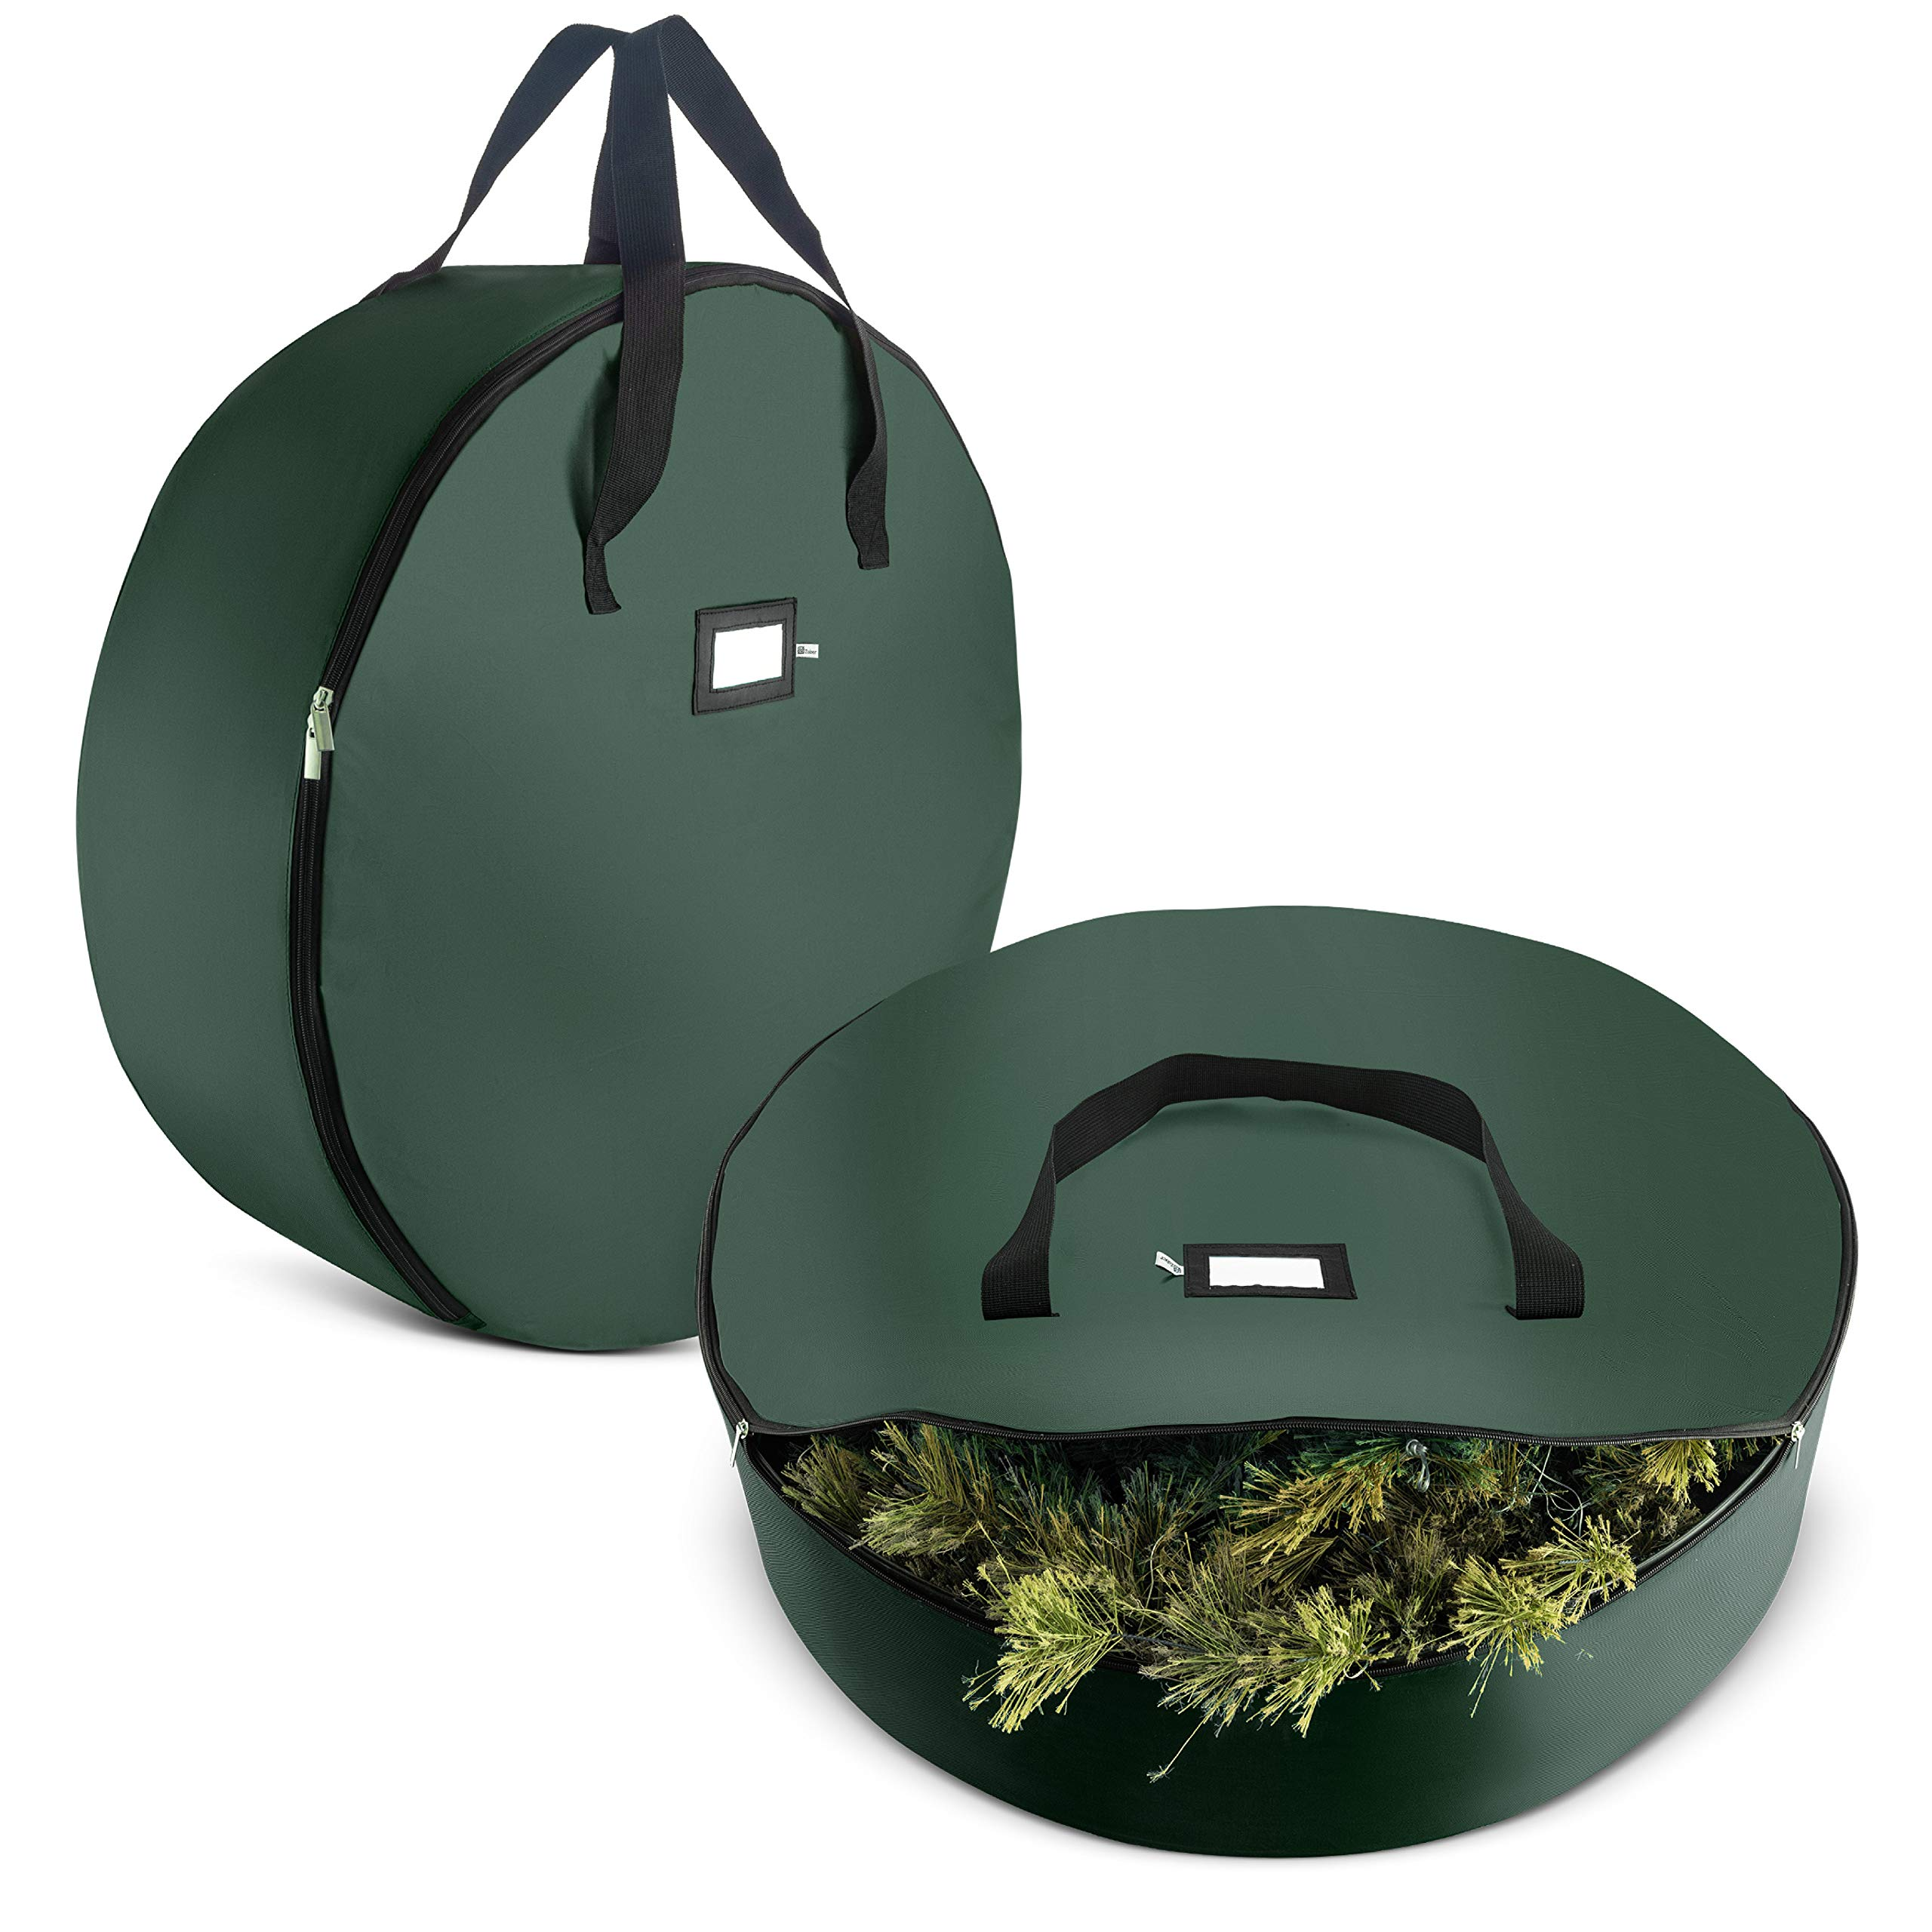 2-Pack Christmas Wreath Storage Bag 30'' - Artificial Wreaths, Durable Handles, Dual Zipper & Card Slot, Holiday Xmas Tear Resistant Storage Container 420D Oxford Fabric by ZOBER